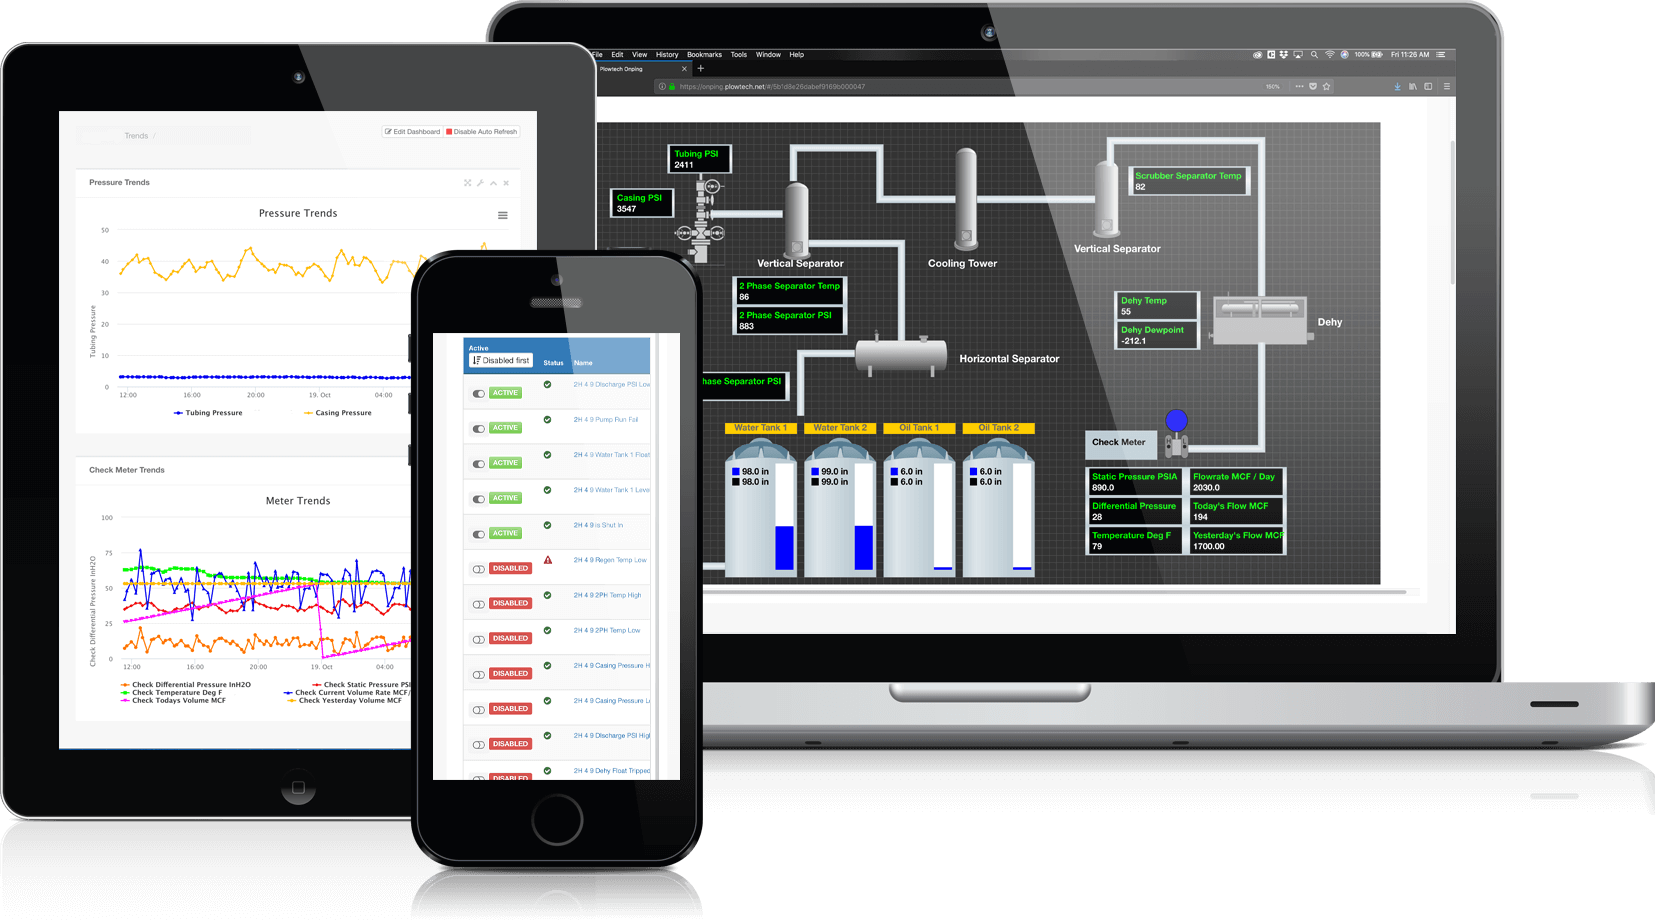 OnPing Oilfield Well Site HMI and SCADA Trending Data, Alarms and HMI Screens for Mobile and Desktop